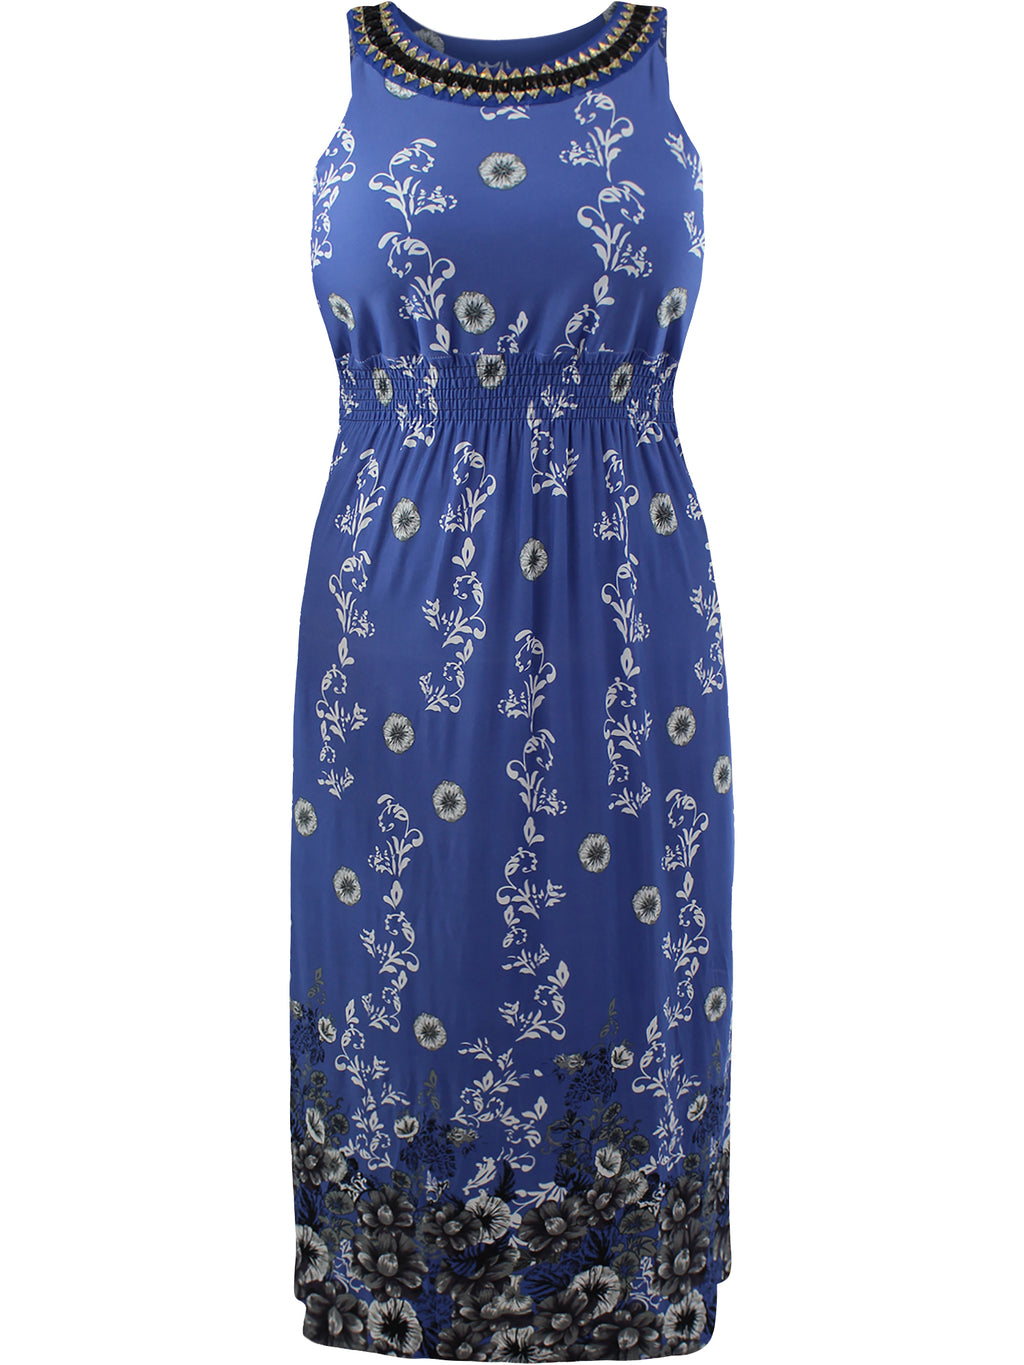 Blue Plus Size Sun Dress With Jeweled Neck